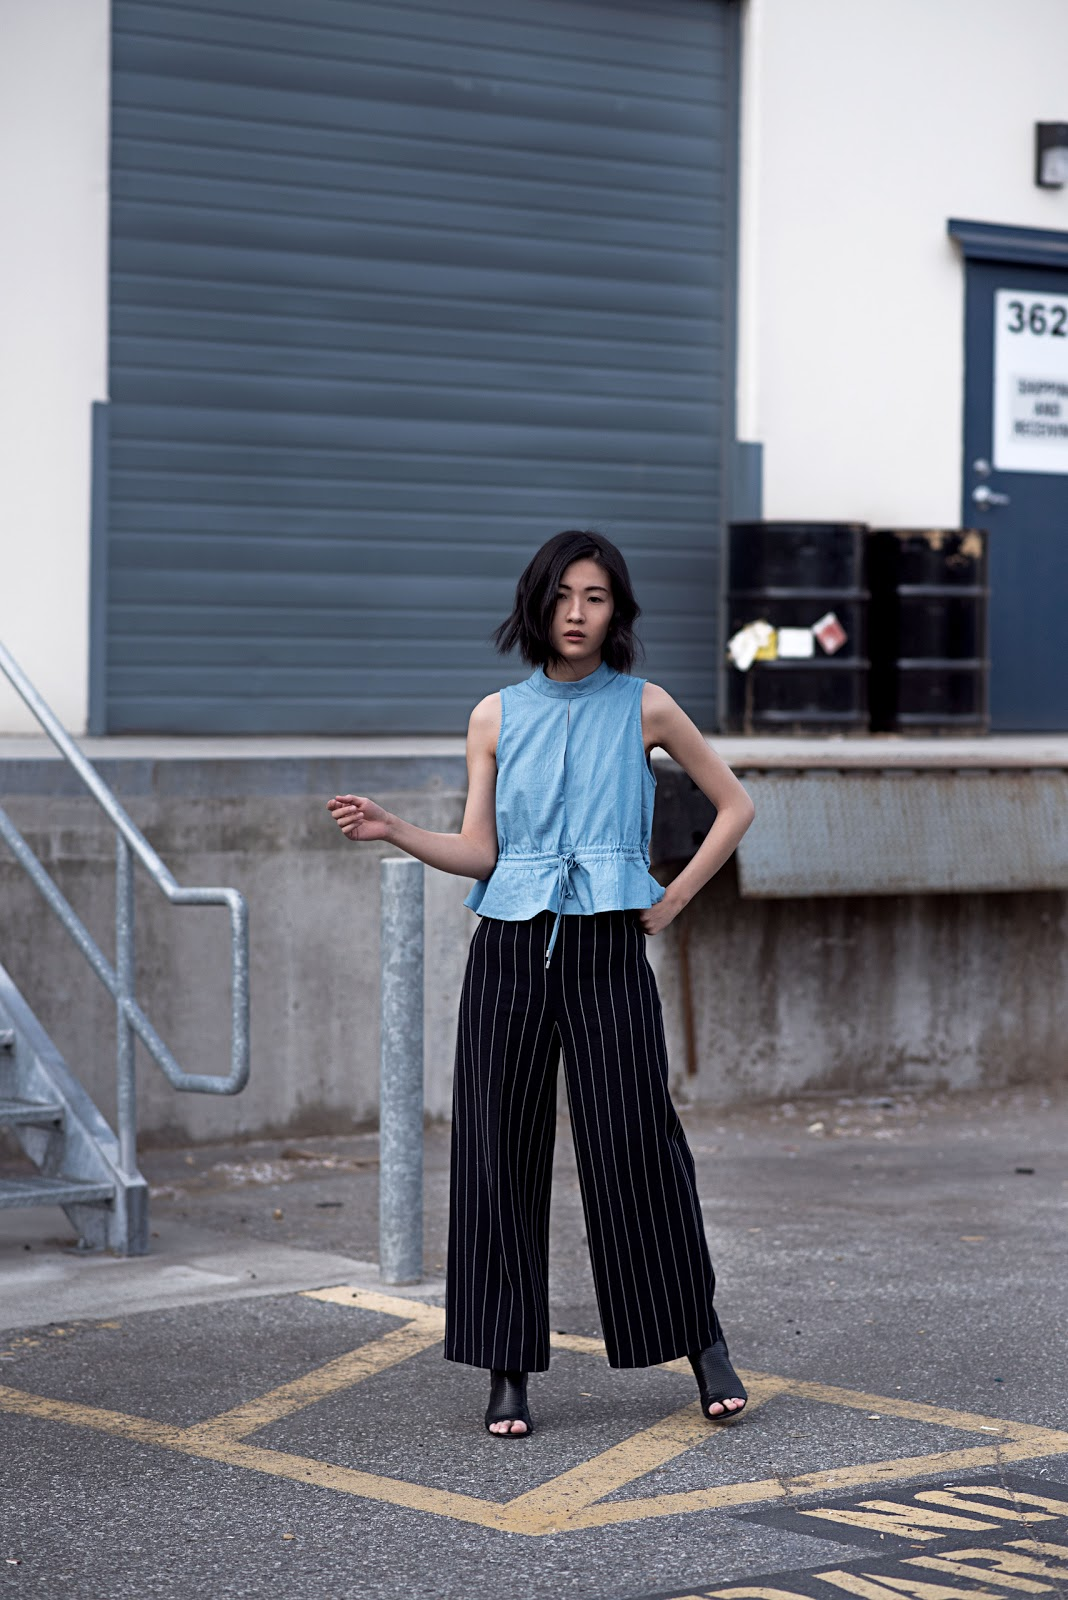 claire liu self portrait von vogue cmeo collective zara pants sam edelman shoes